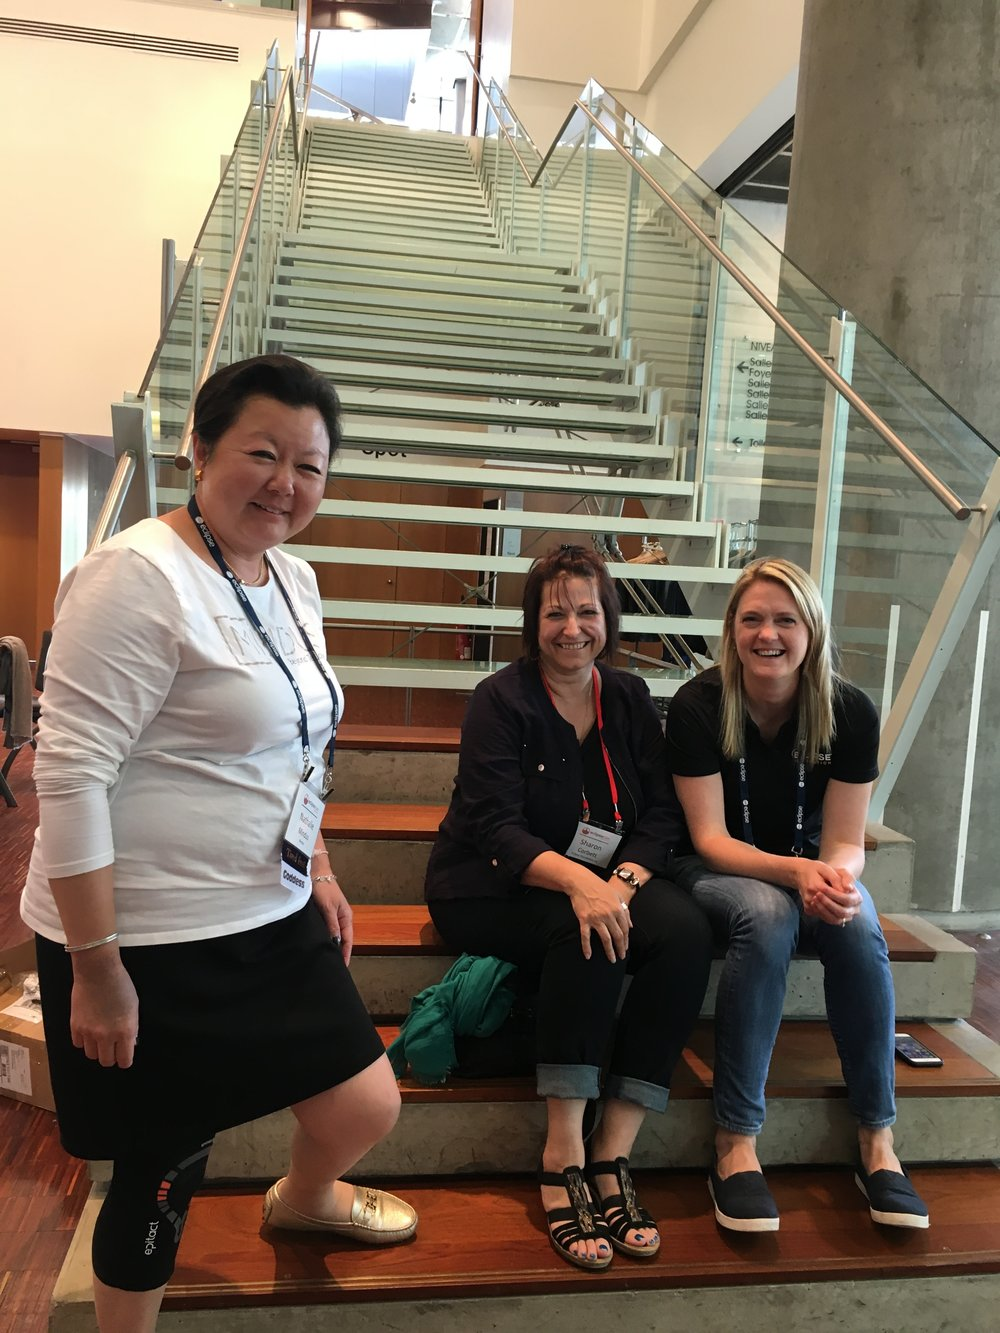 Tired feet at EclipseCon, Nathalie Mindus with Sharon Corbett and Jennifer Martel